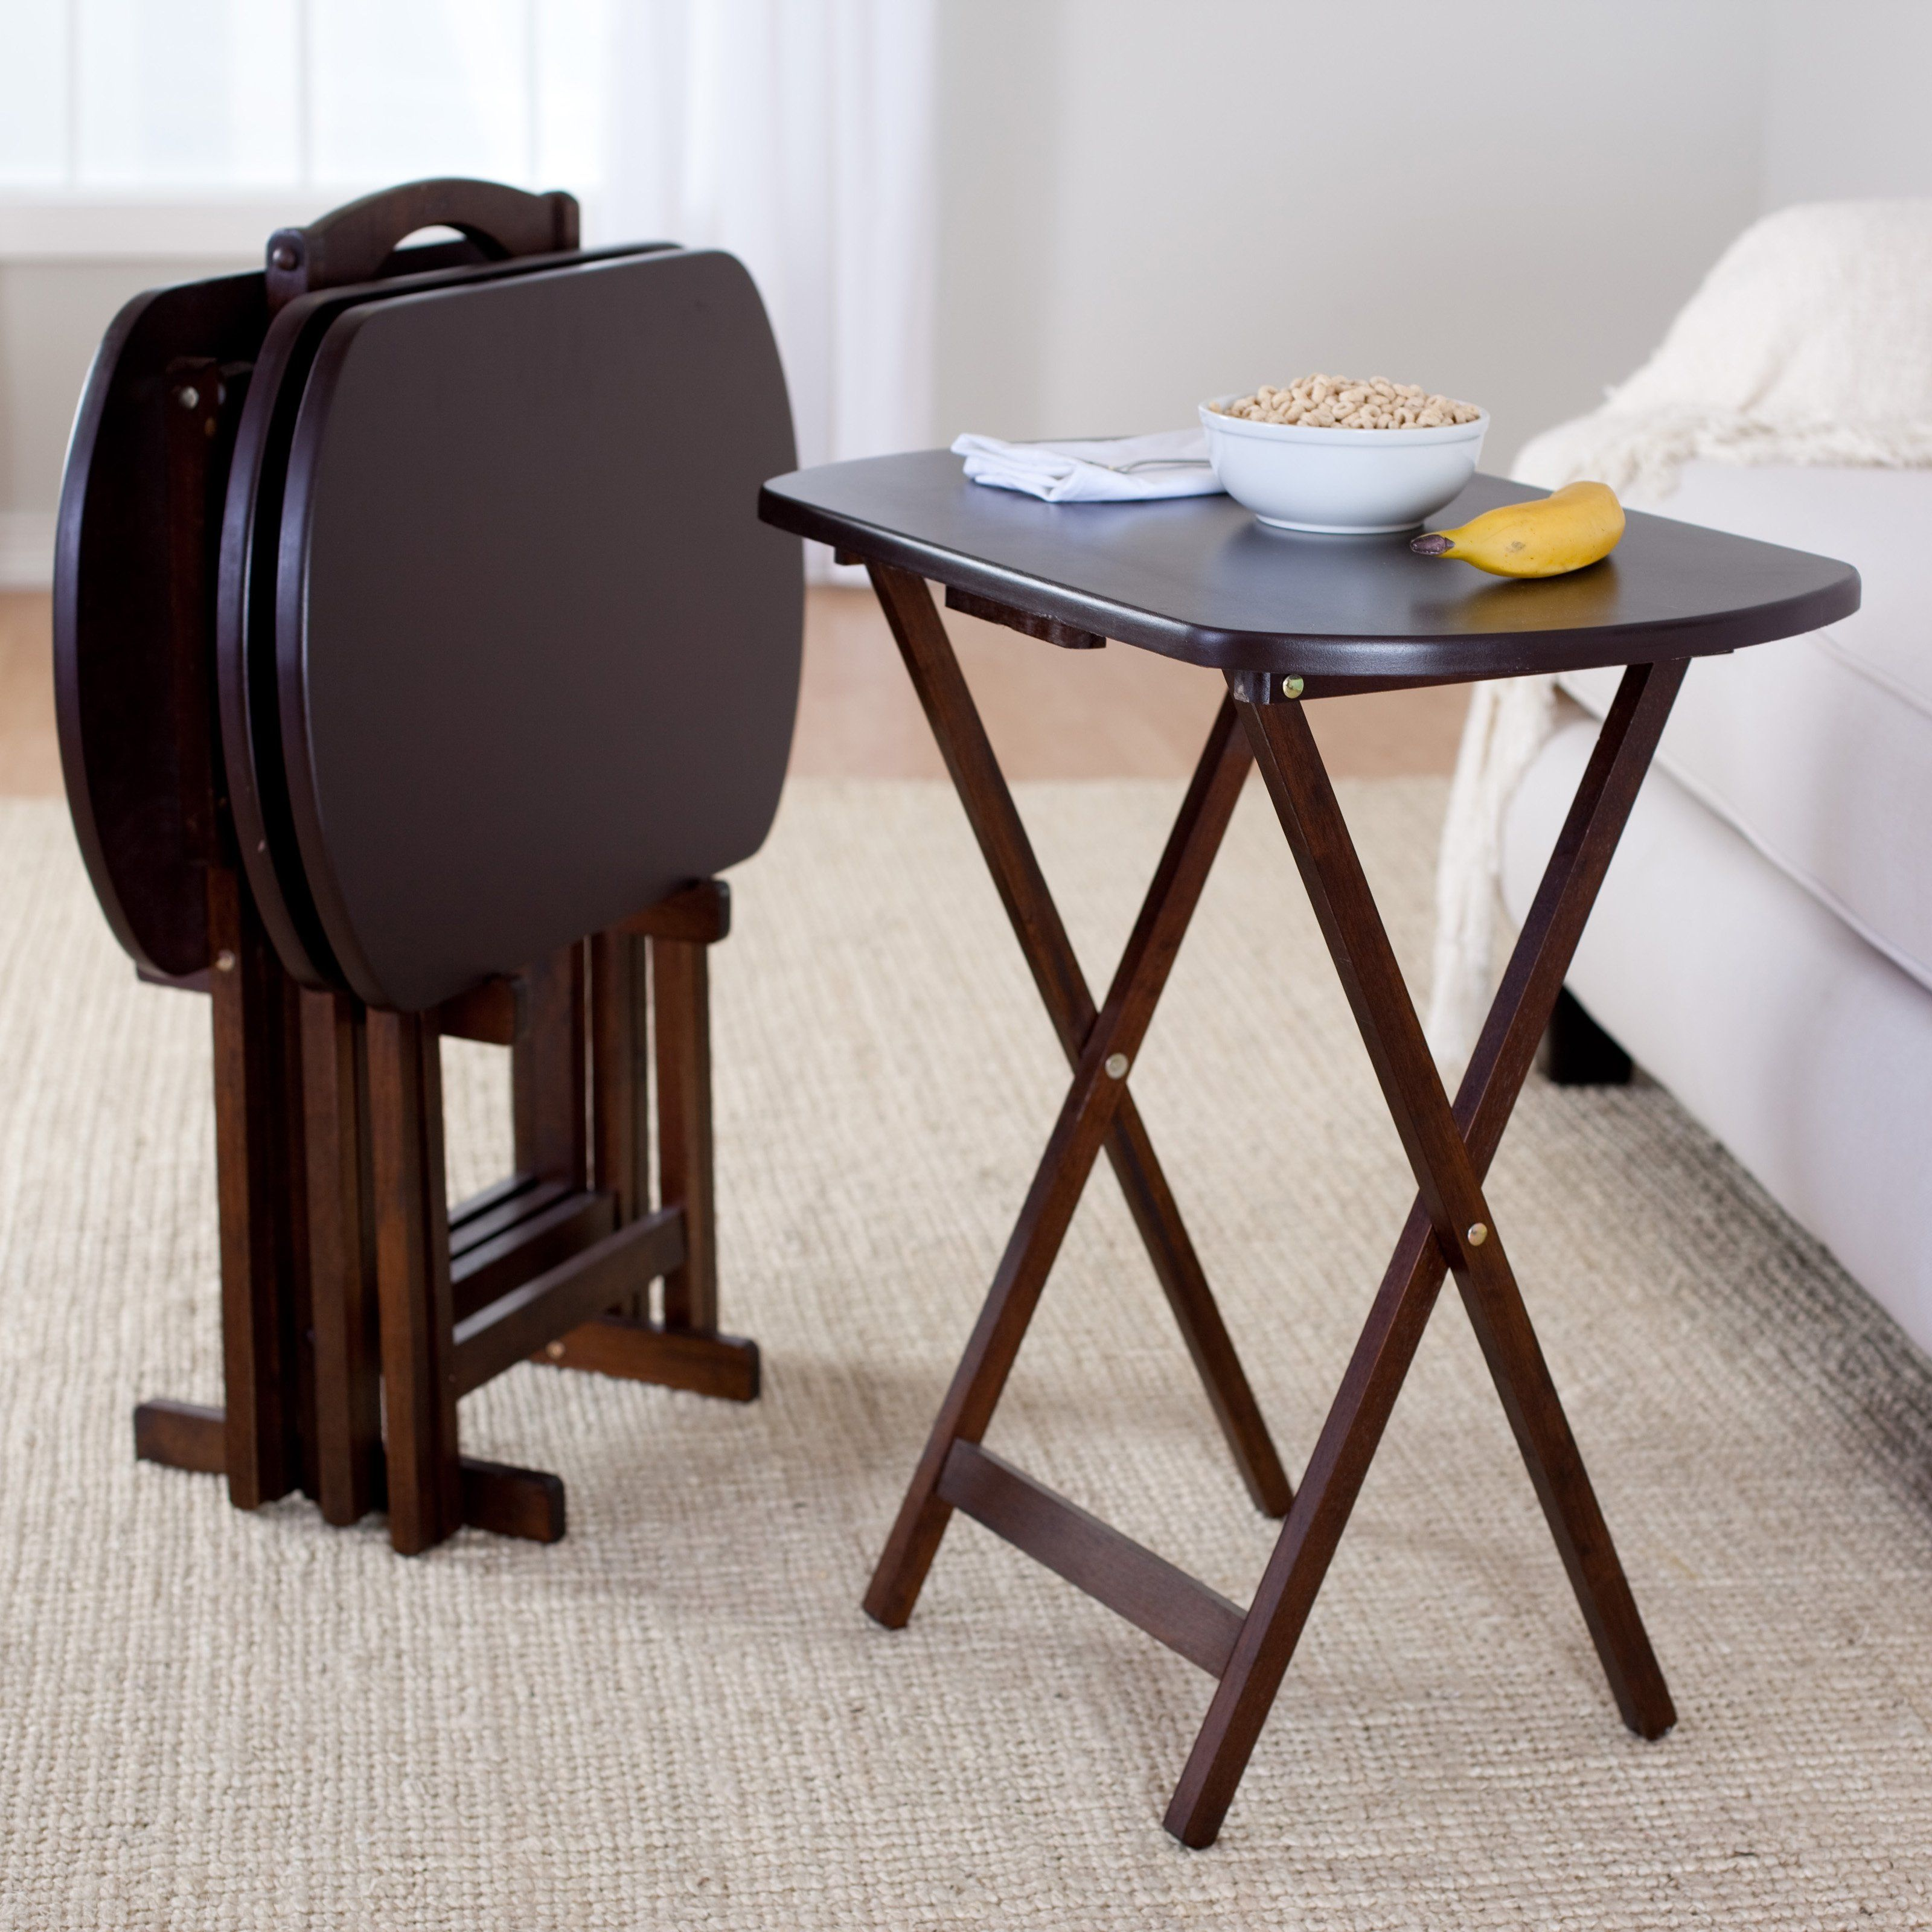 Tv Table Tray Sets | Home design ideas